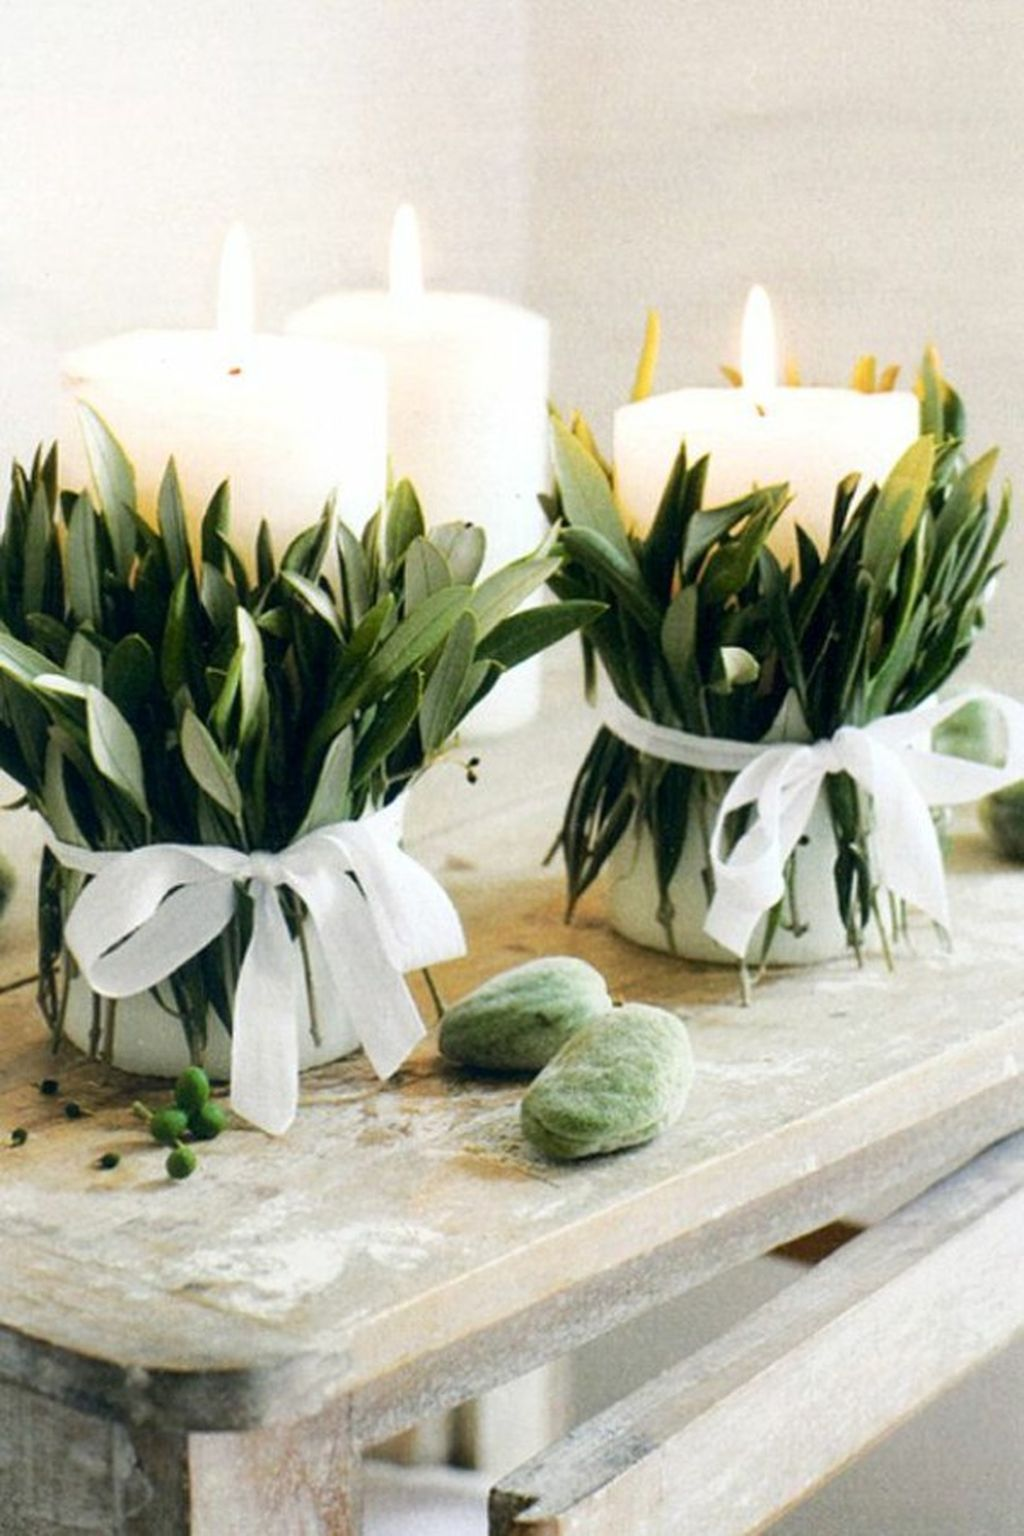 Inspiring Modern Rustic Christmas Centerpieces Ideas With Candles 97